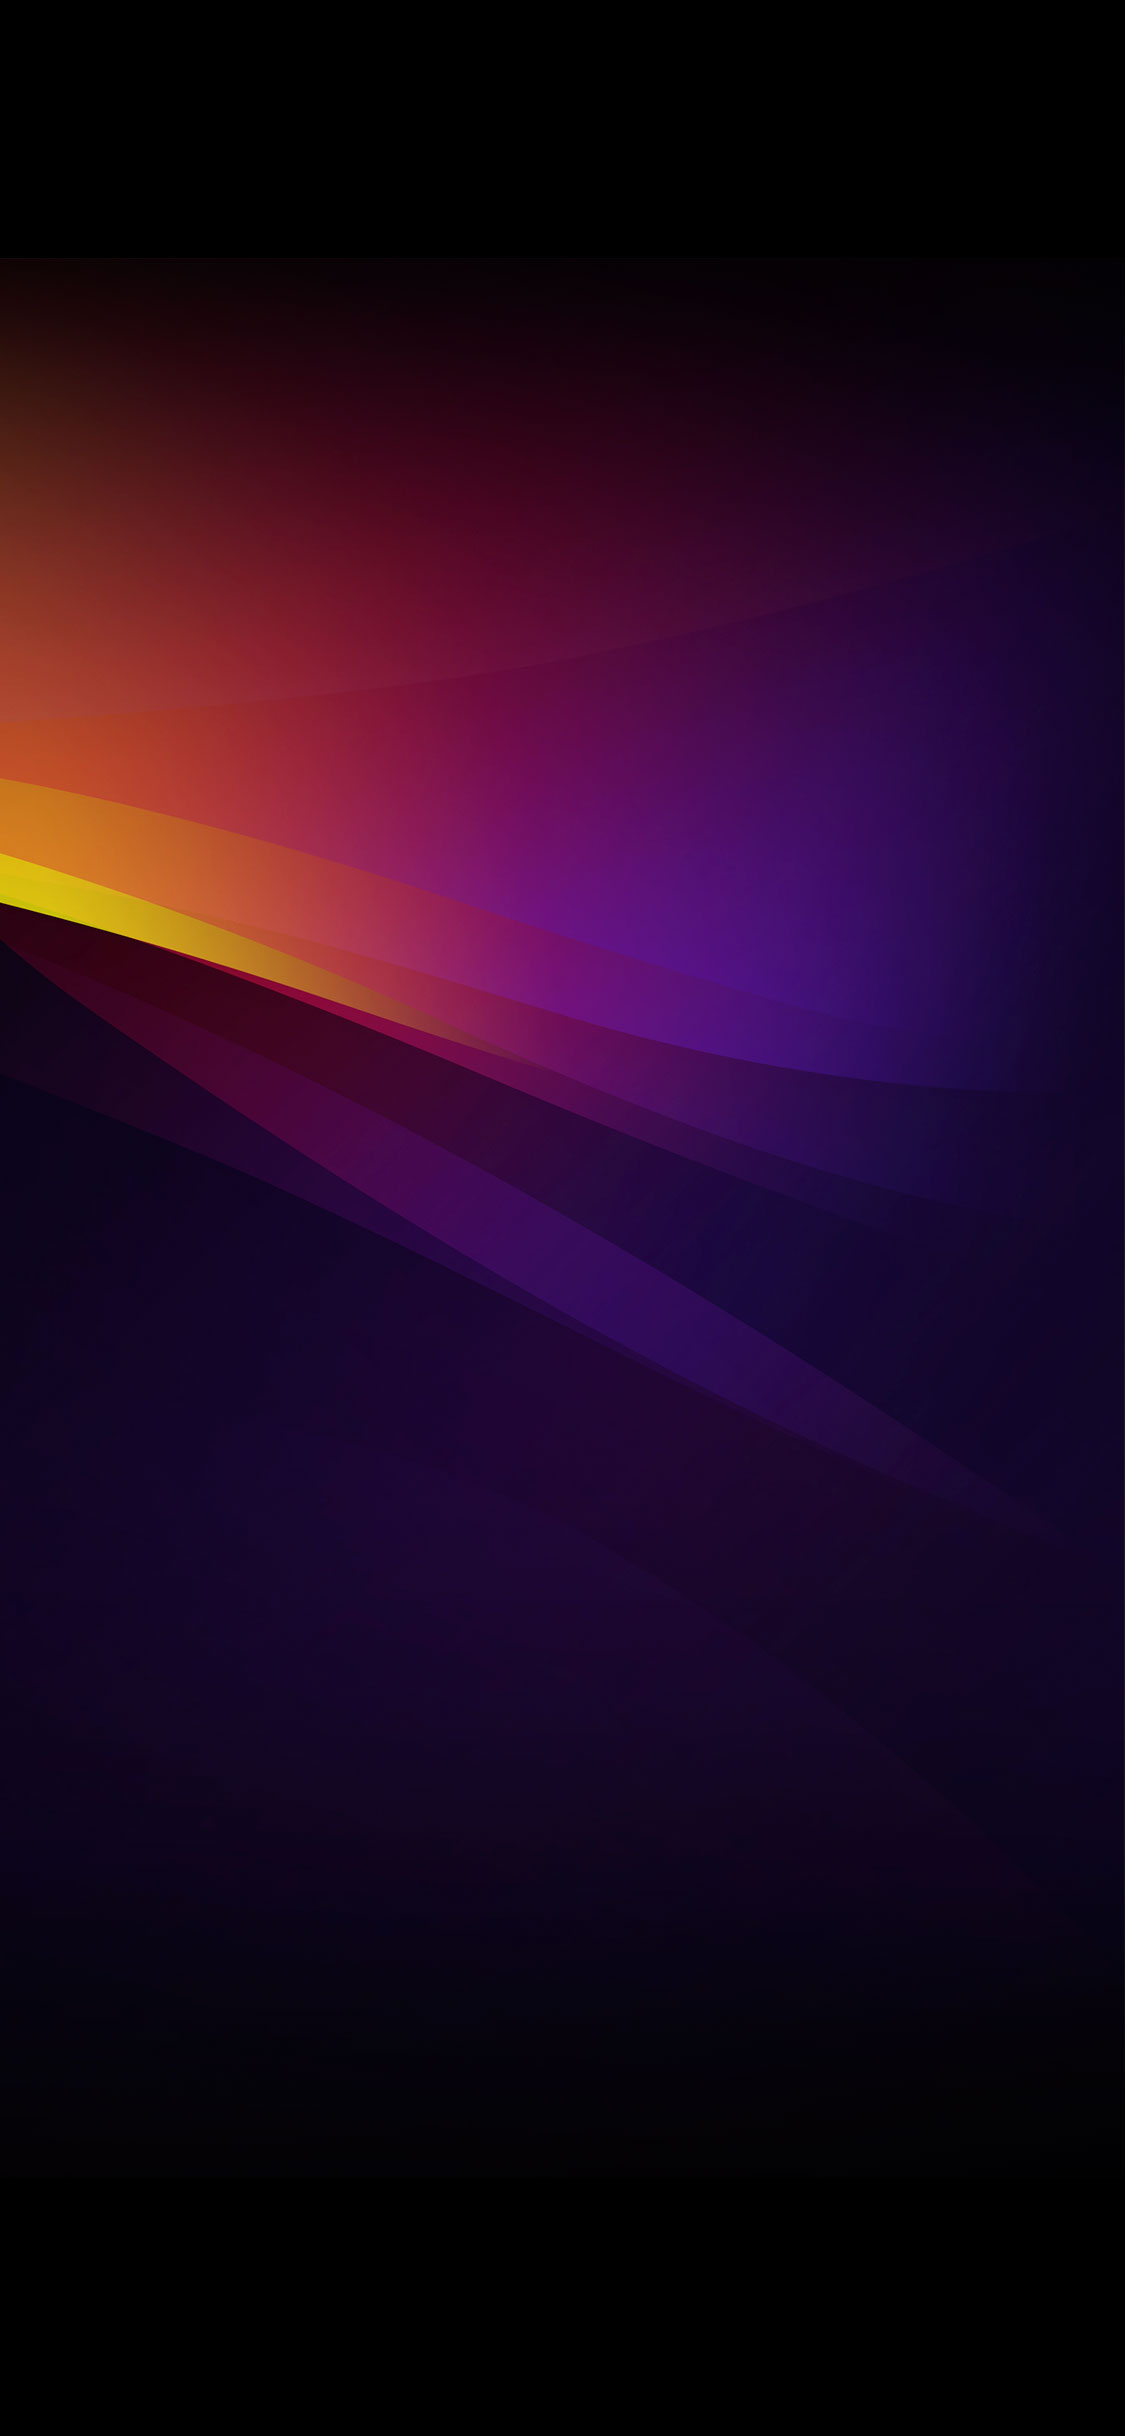 50 Best Iphone X Wallpapers Backgrounds